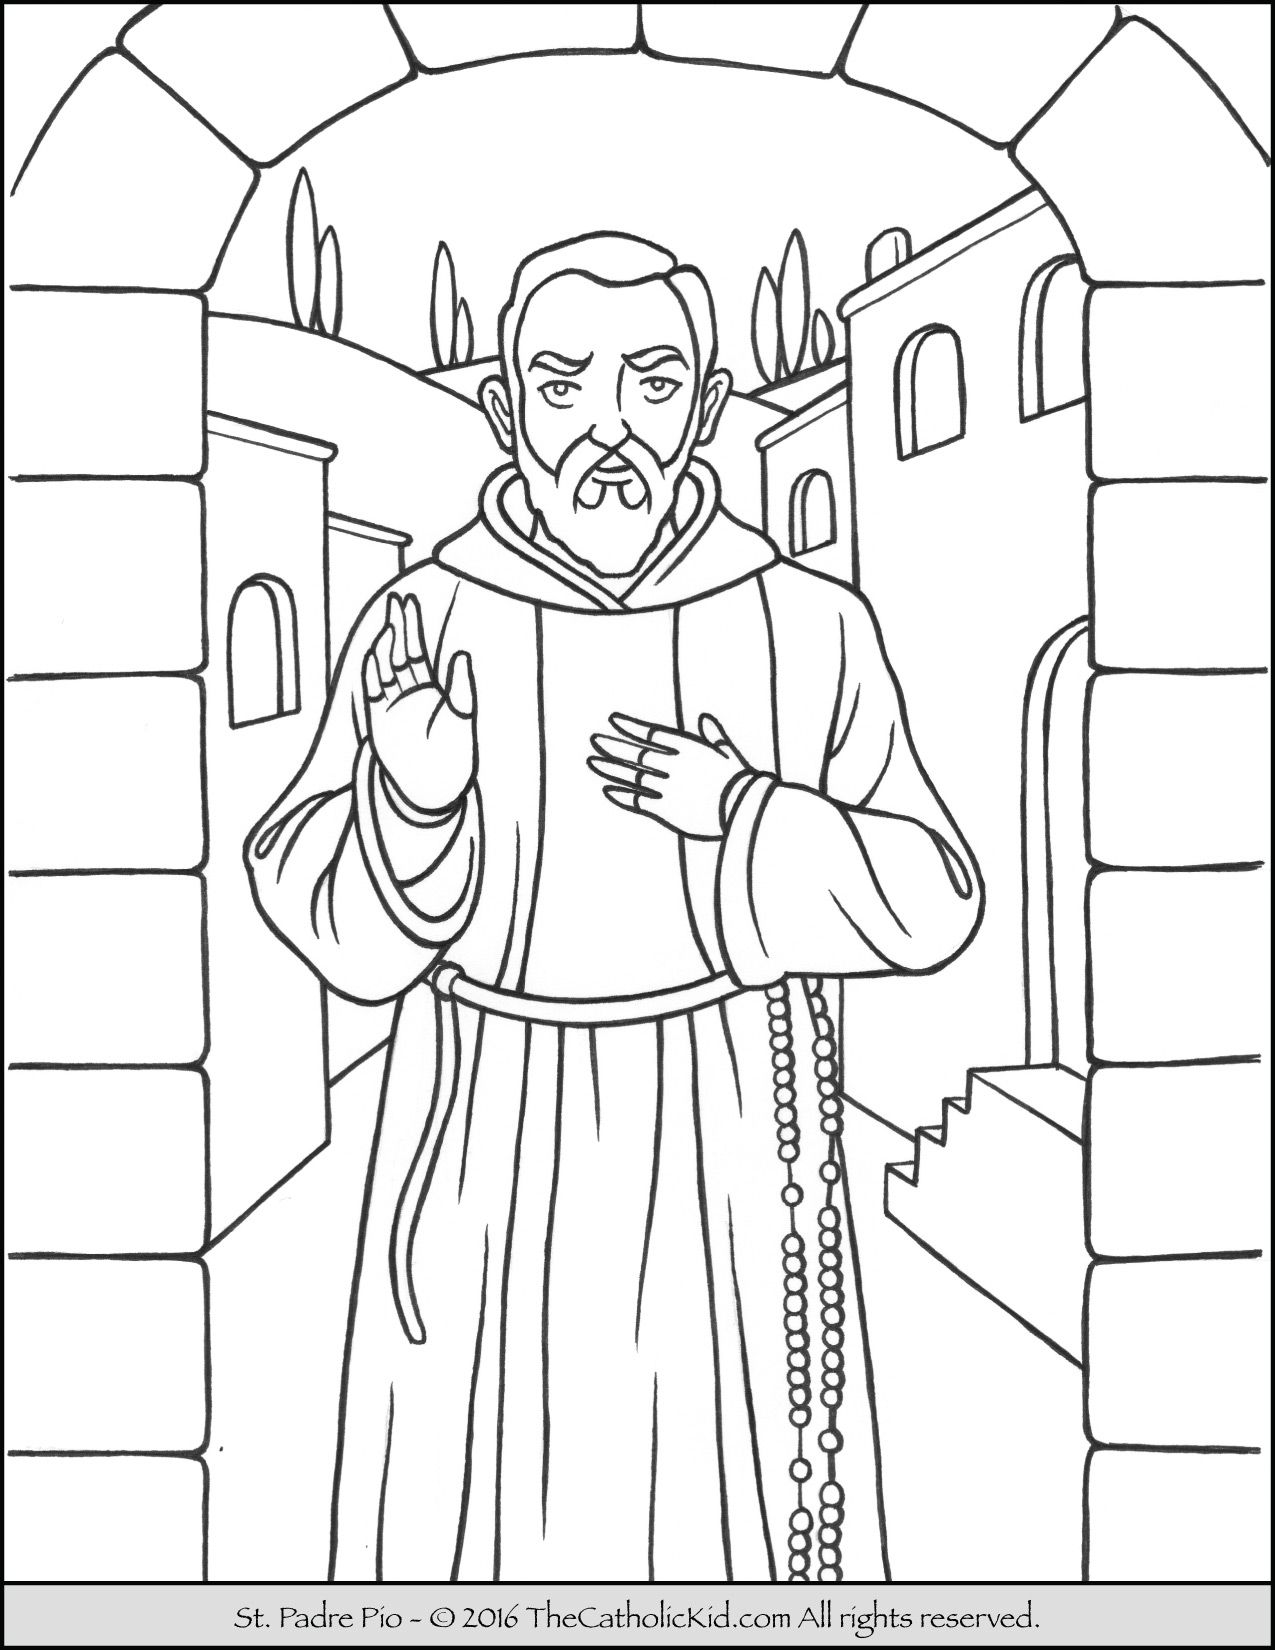 Saint Padre Pio Coloring Page The Catholic Kid Christian